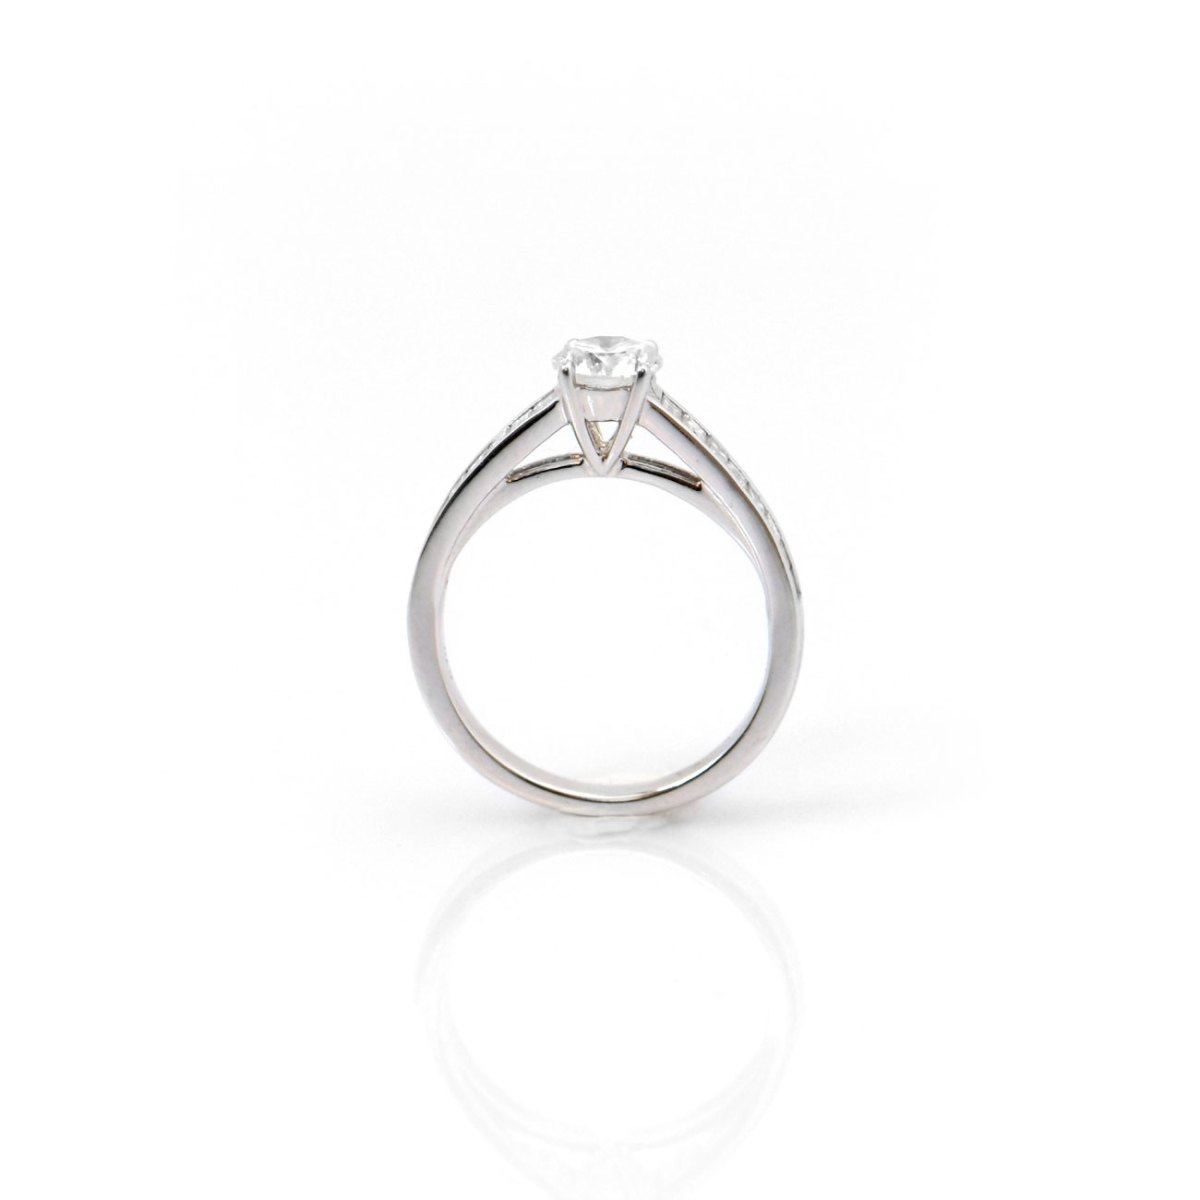 Bague MESSIKA Diamants et Or blanc 750‰ | Réf. BA-B18183